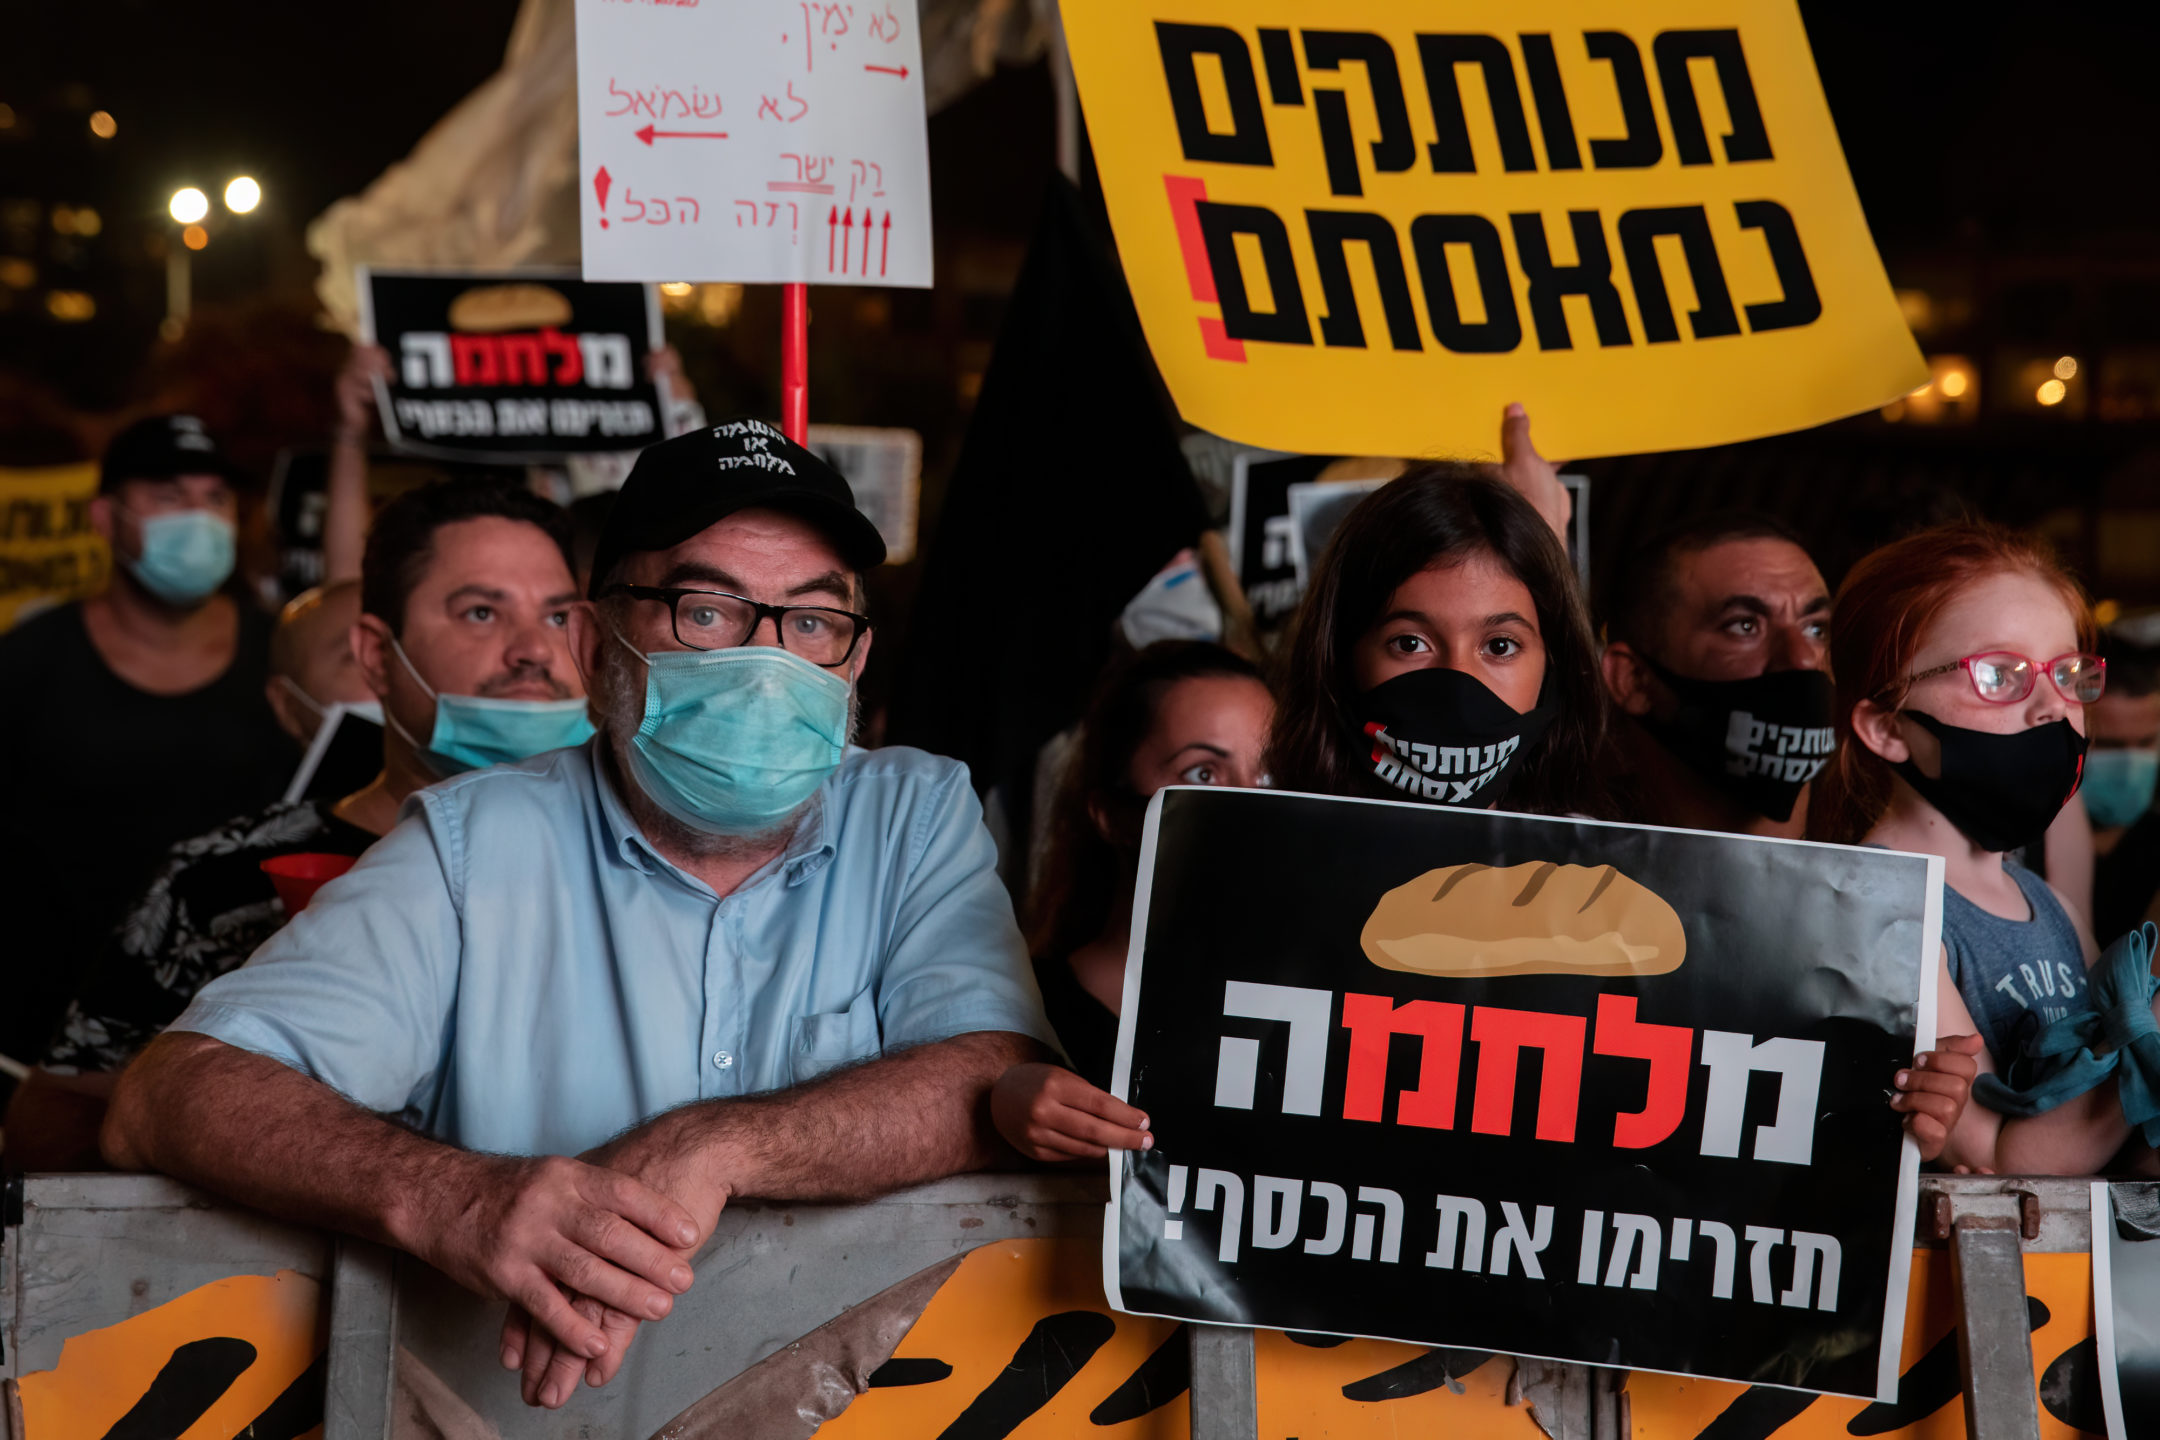 Israelis demonstrate against country's response to economic crisis as COVID-19 cases mount